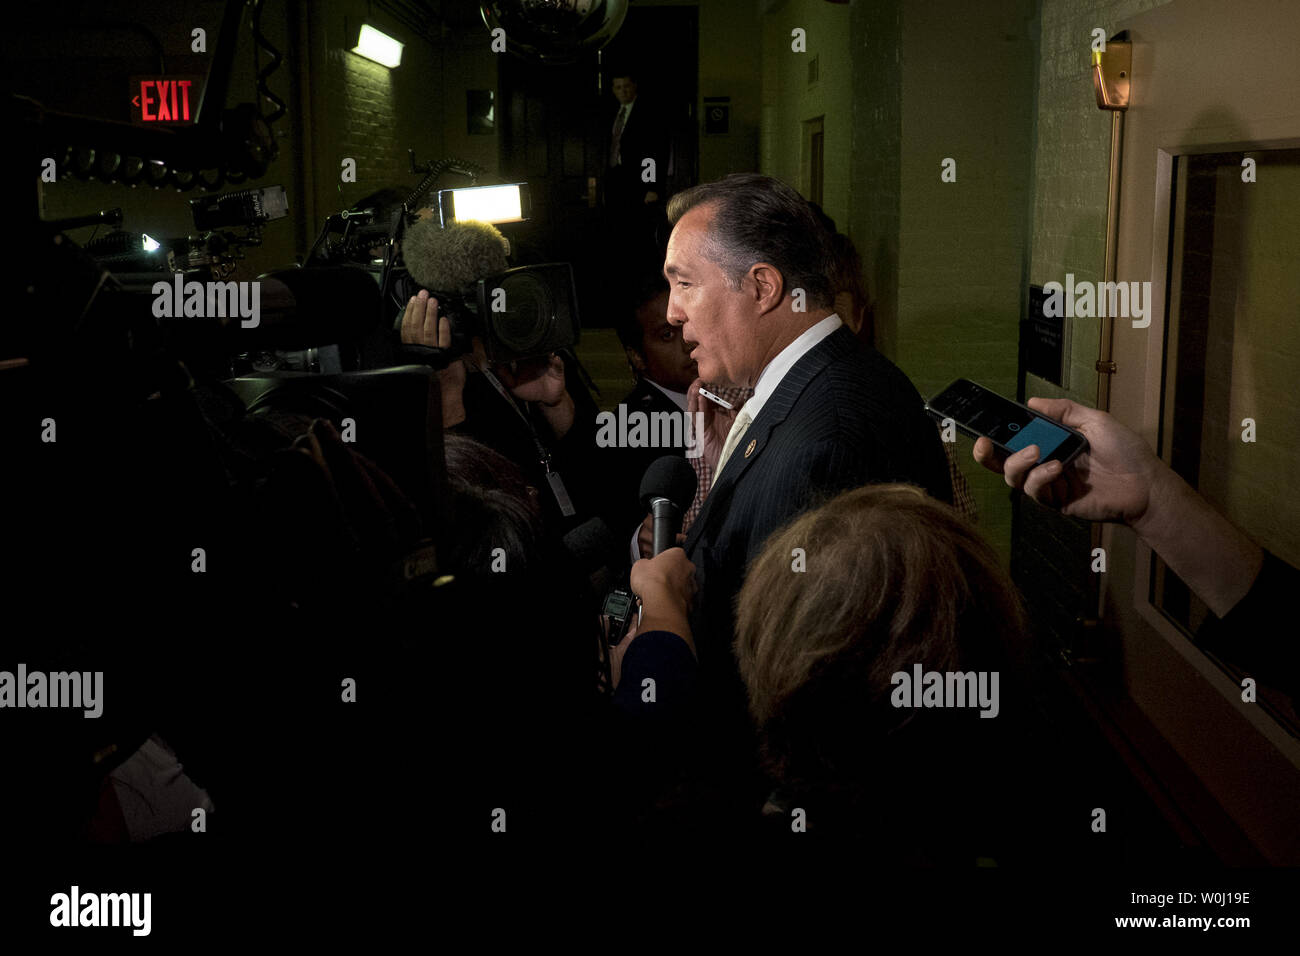 Rep. Trent Franks (R-AZ) speaks to the media after leaving a GOP Conference Candidates forum for the election of the new Speaker of the House on October 28, 2015 in Washington, D.C. The Republicans are selecting a candidate for Speaker that will replace John Boehner (R-OH) when he retires on October 30. Photo by Pete Marovich/UPI - Stock Image